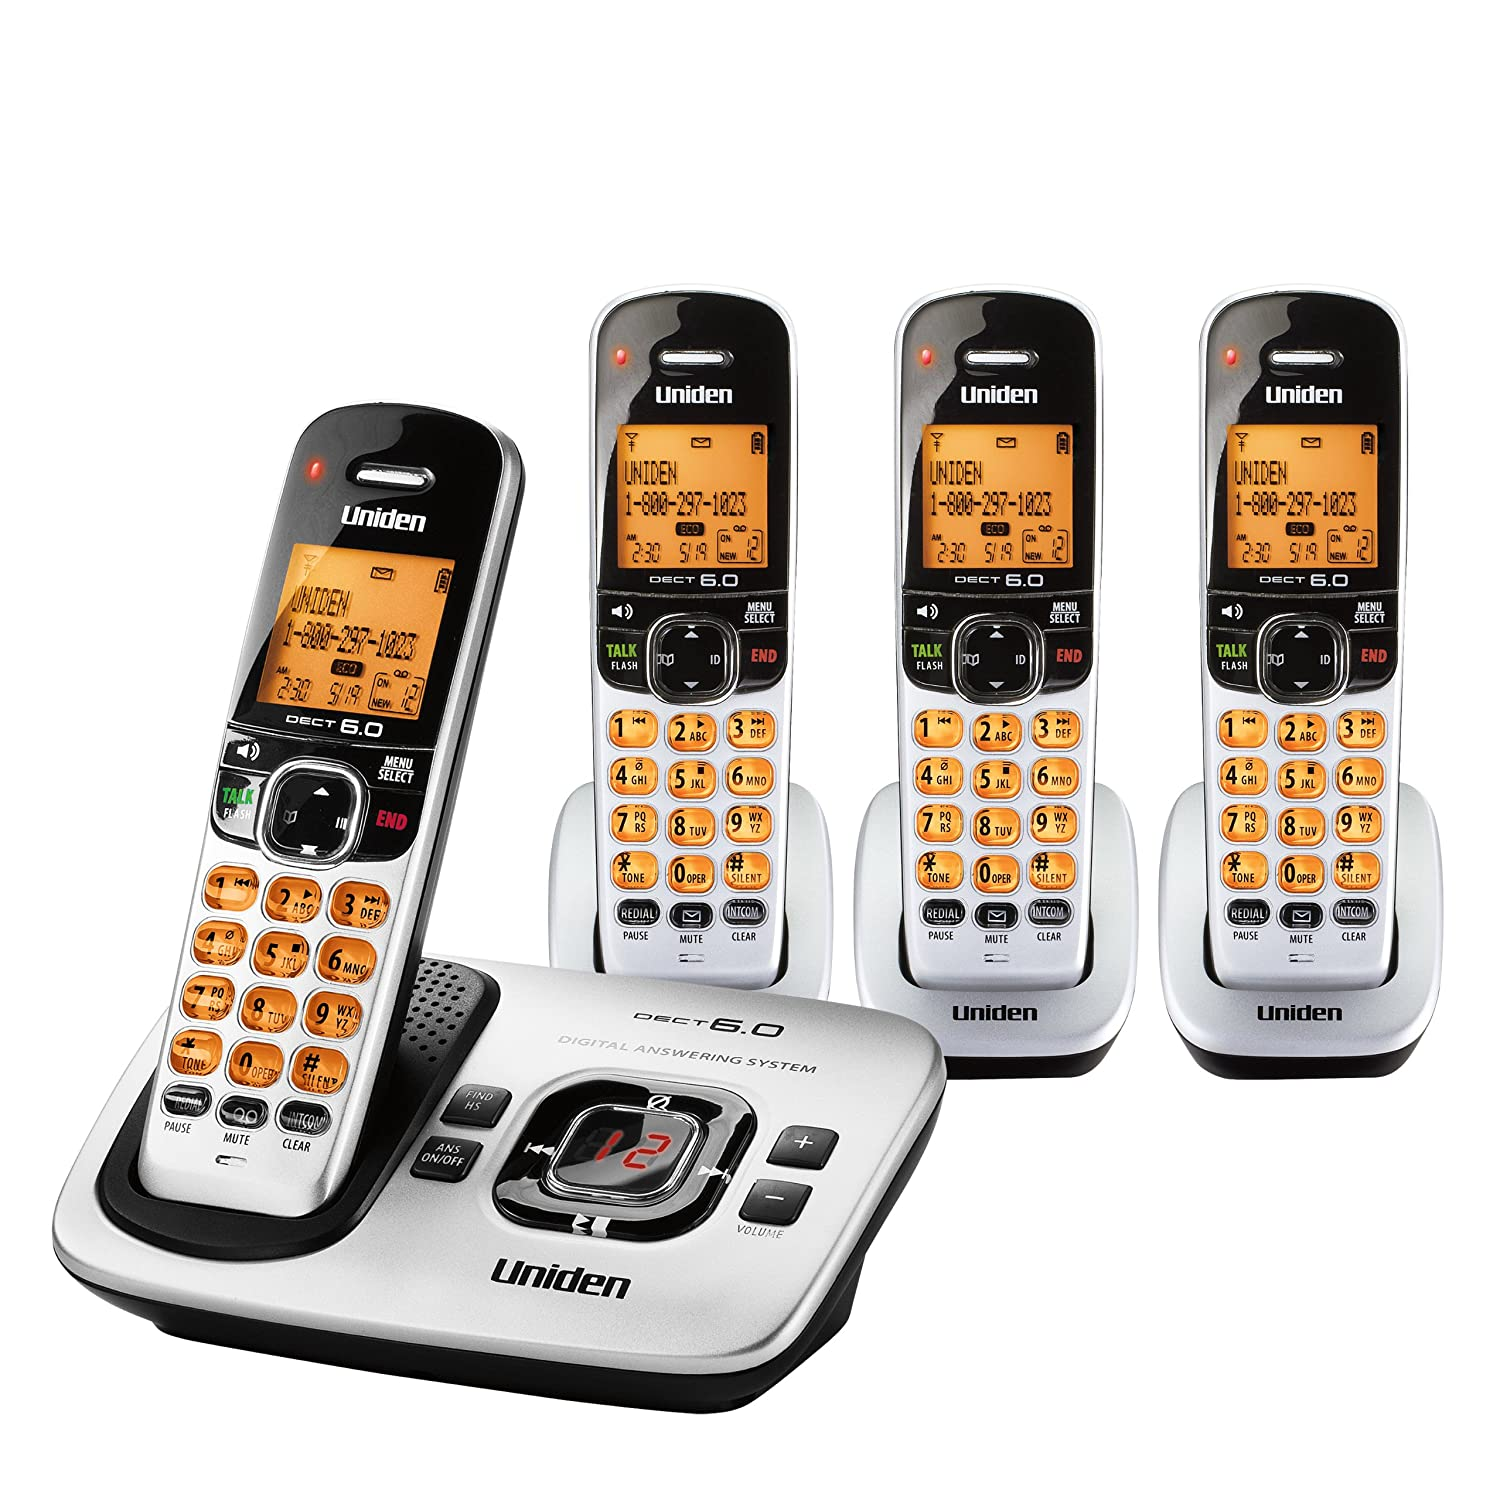 Amazon.com : Uniden DECT 6.0 Expandable 4 Handset Cordless Phone with  Digital Answering System - Silver (D1780-4) : Laptop Computer Chargers And  Adapters ...